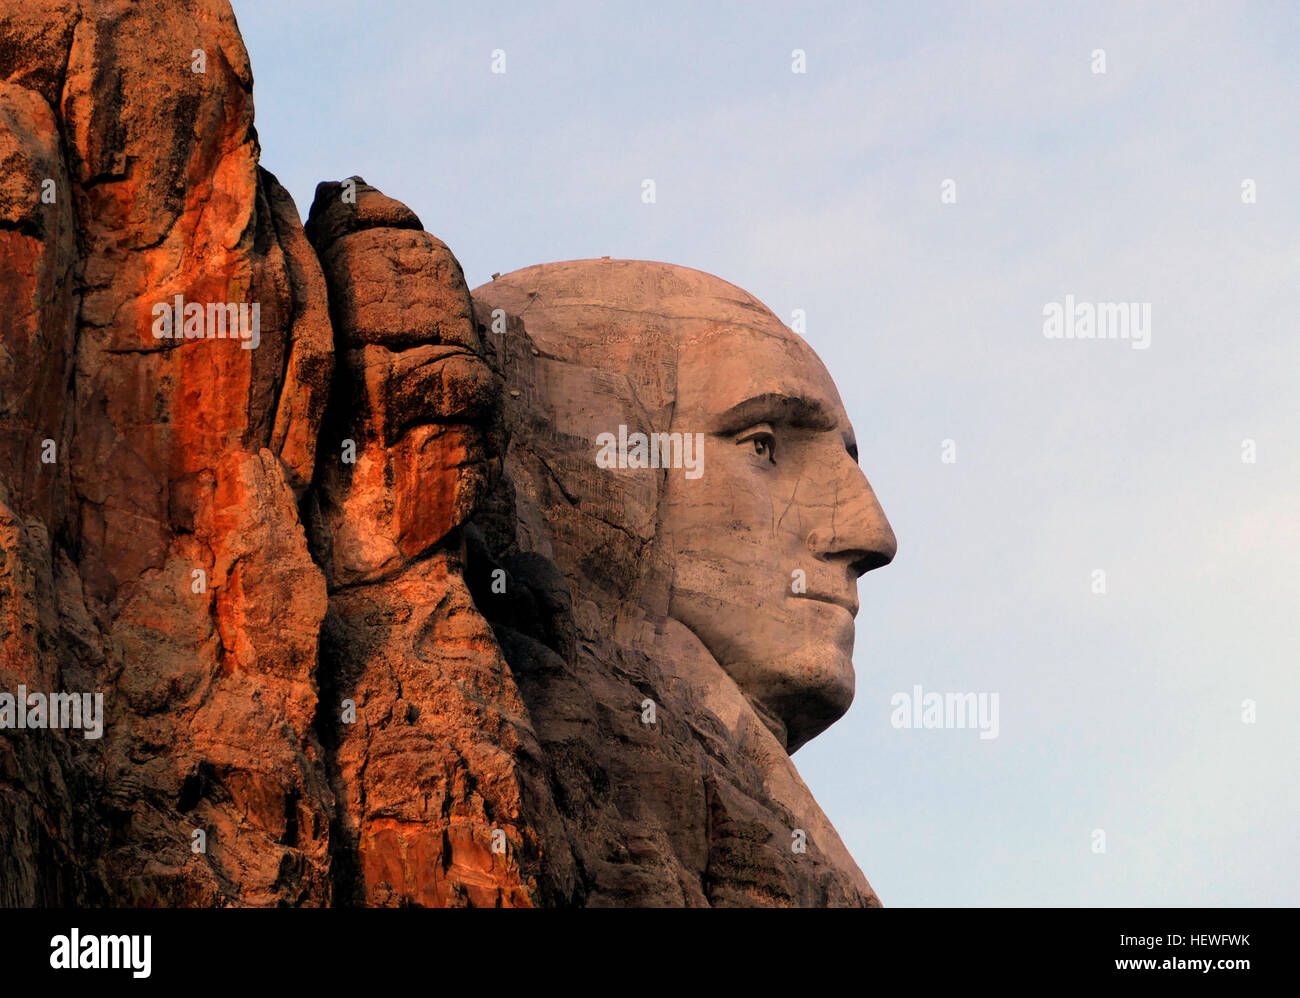 Mount Rushmore National Memorial is a massive sculpture carved into Mt. Rushmore in the Black Hills region of South - Stock Image